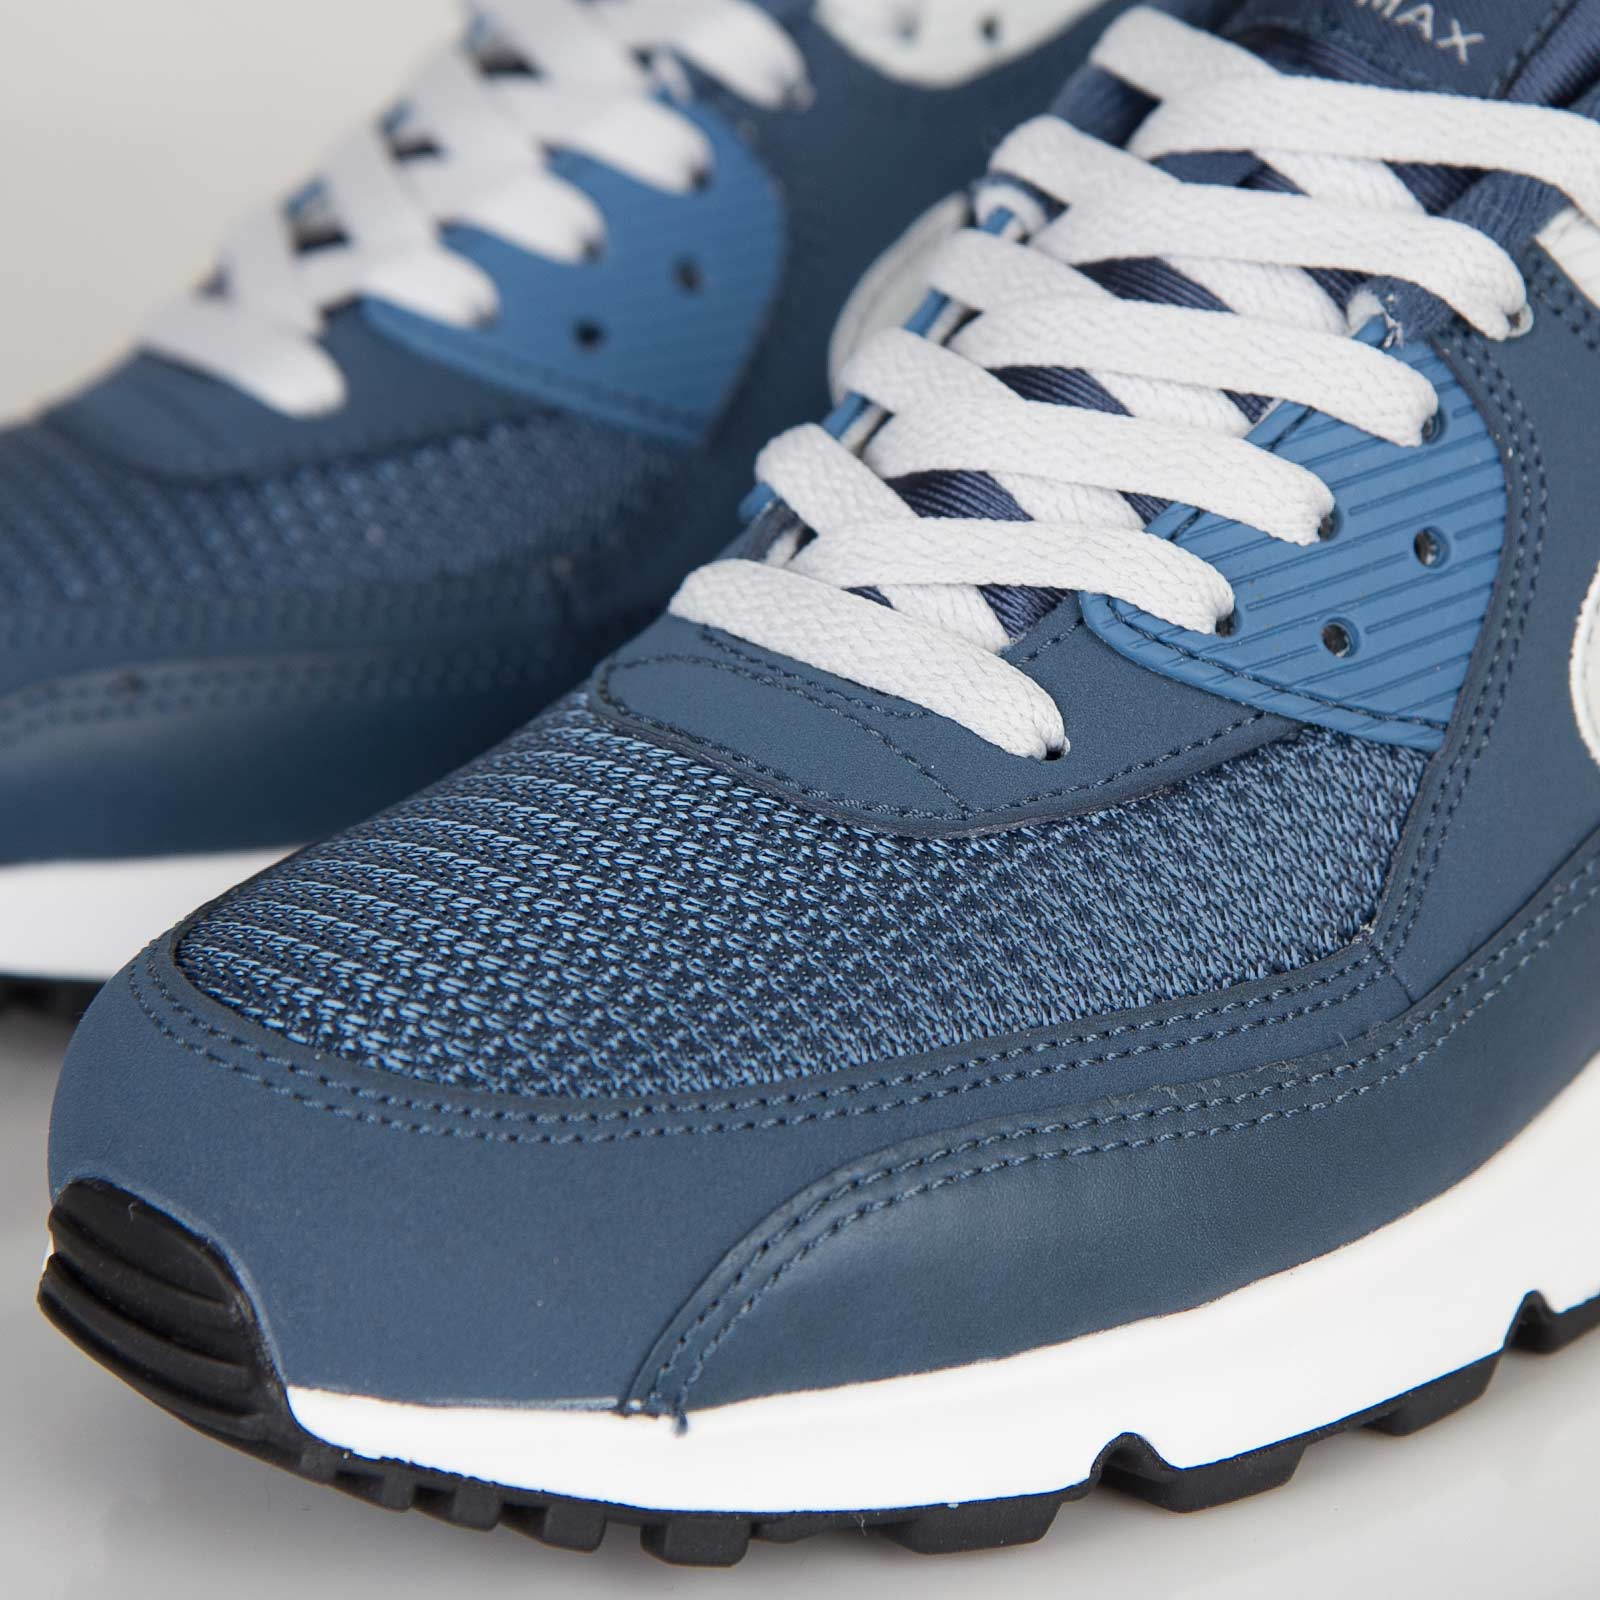 low cost 2a54e 86ce5 Nike Air Max 90 Essential - 537384-405 - Sneakersnstuff   sneakers    streetwear online since 1999